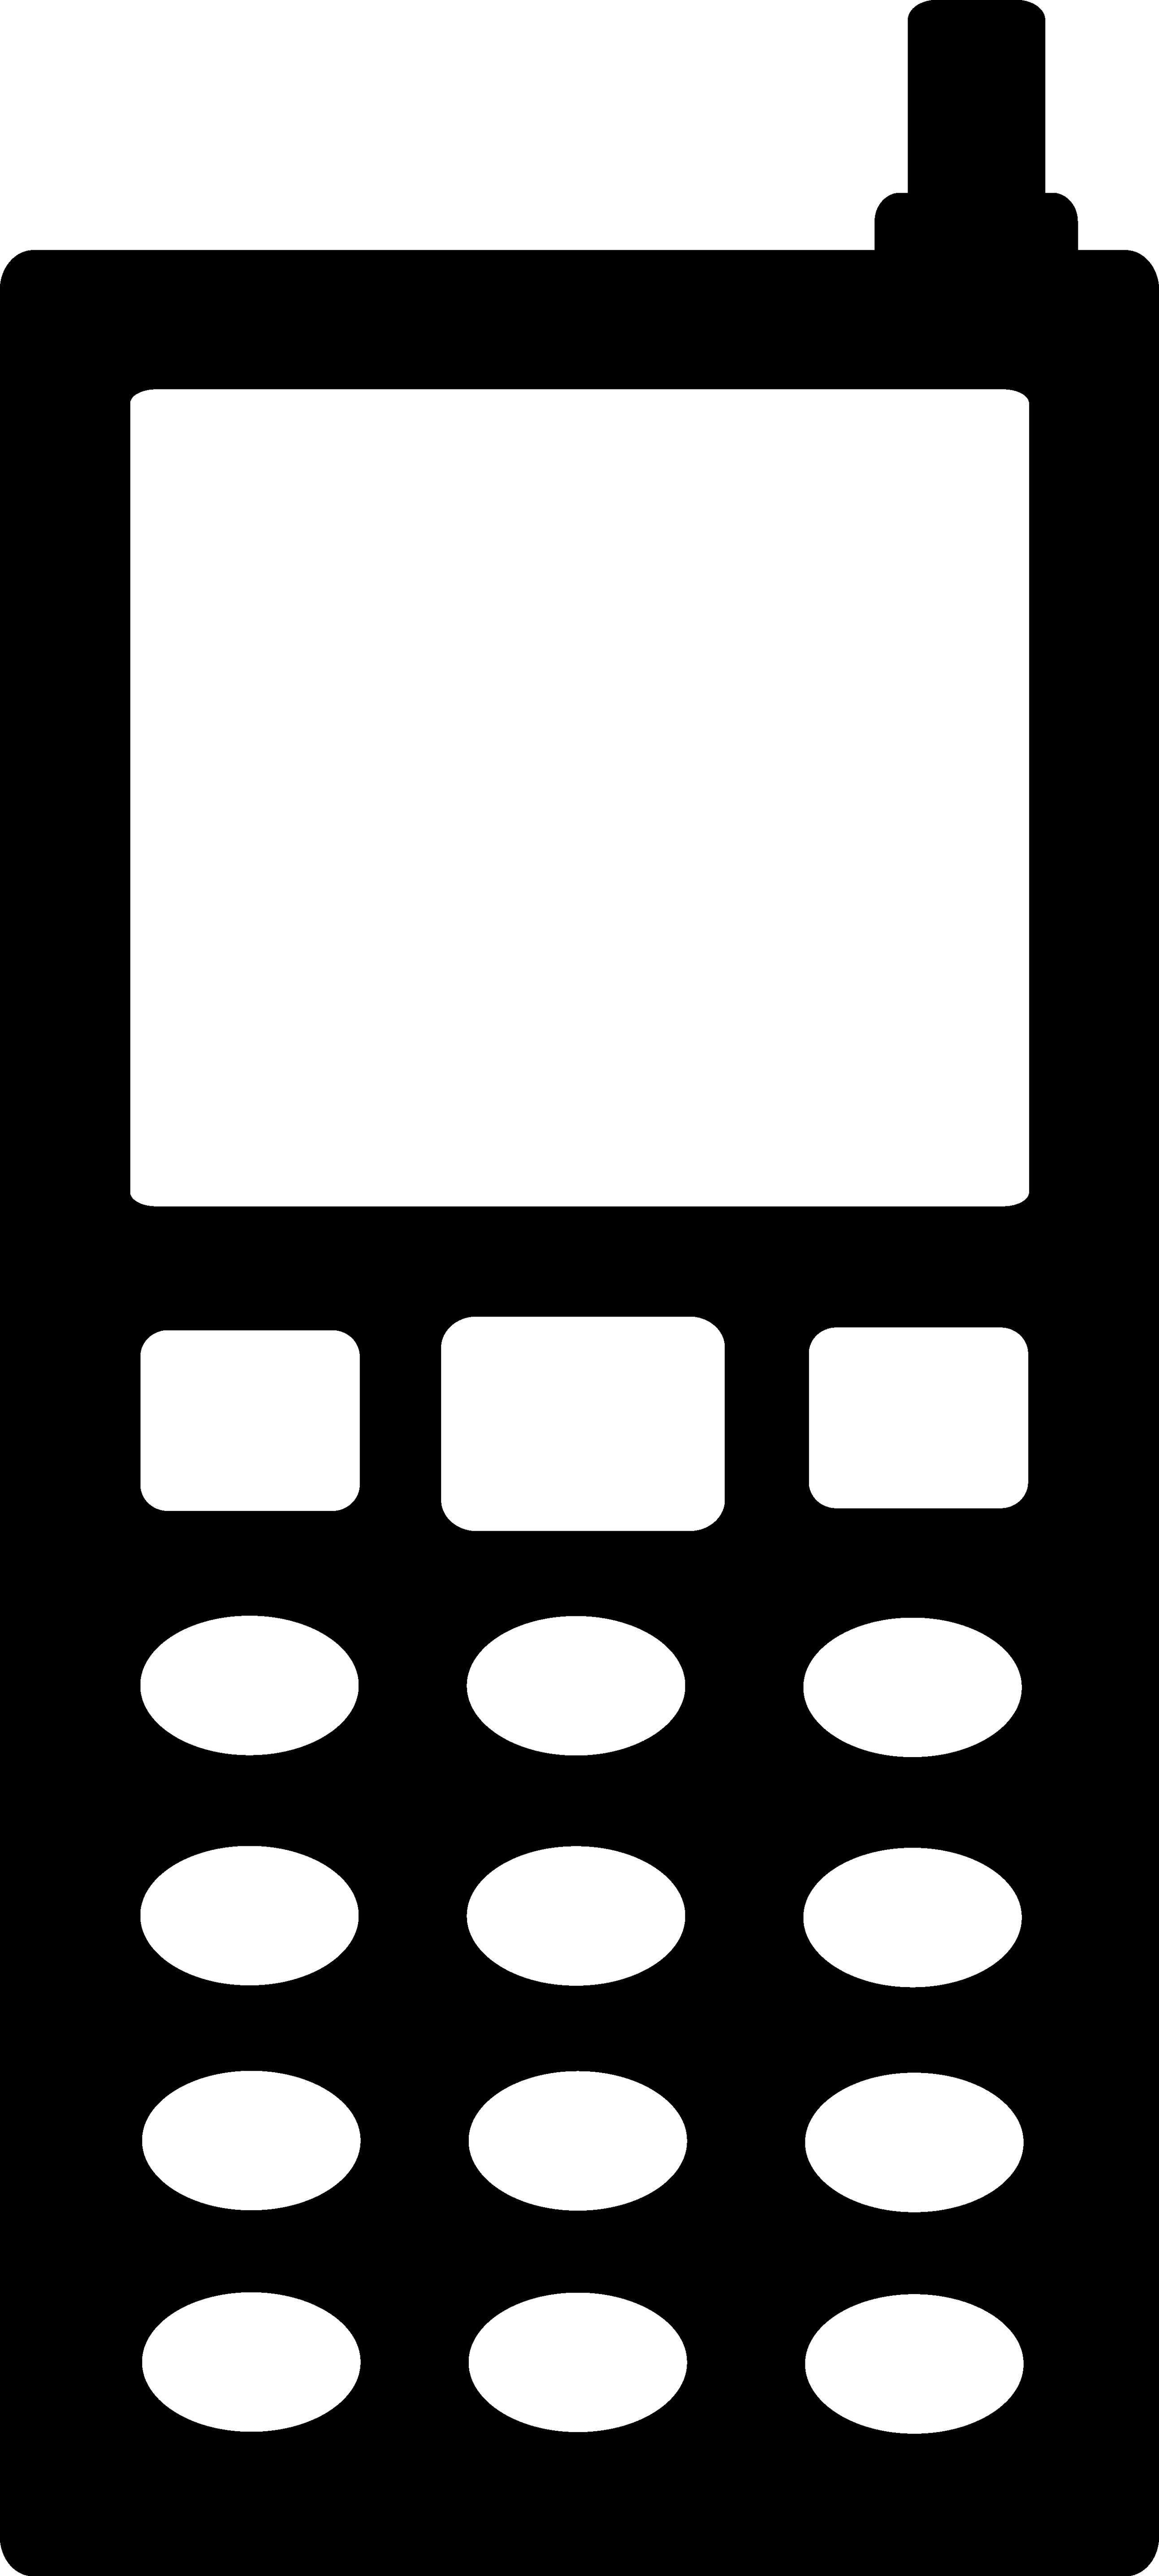 White clipart cellphone White and mobile phone clipart